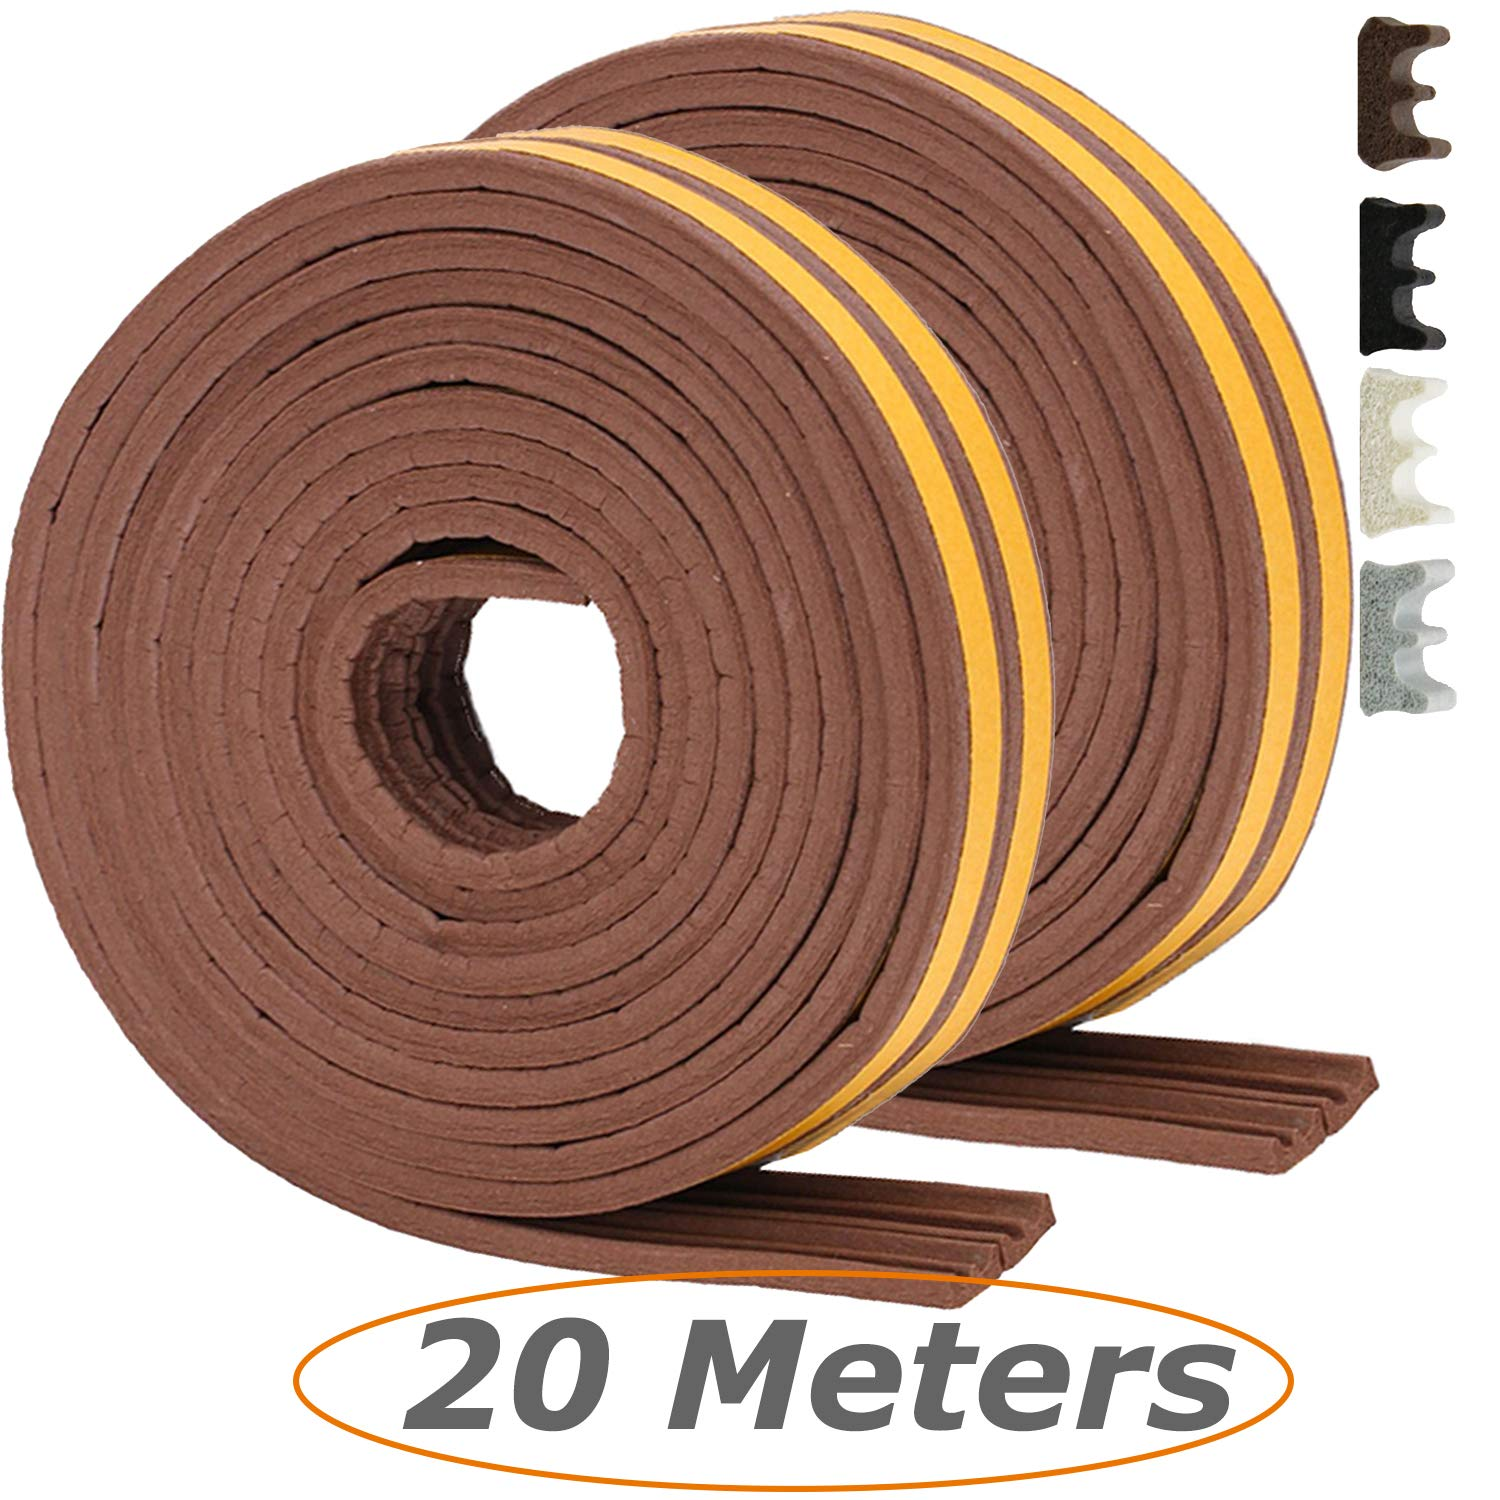 I Type Black Tavie 20 Meters Draught Excluders Seals Sound Noise Insulation Insulating Rubber Seal Weather Strip Foam Tape Door Window Muffle The Noise Draught Strip Durable